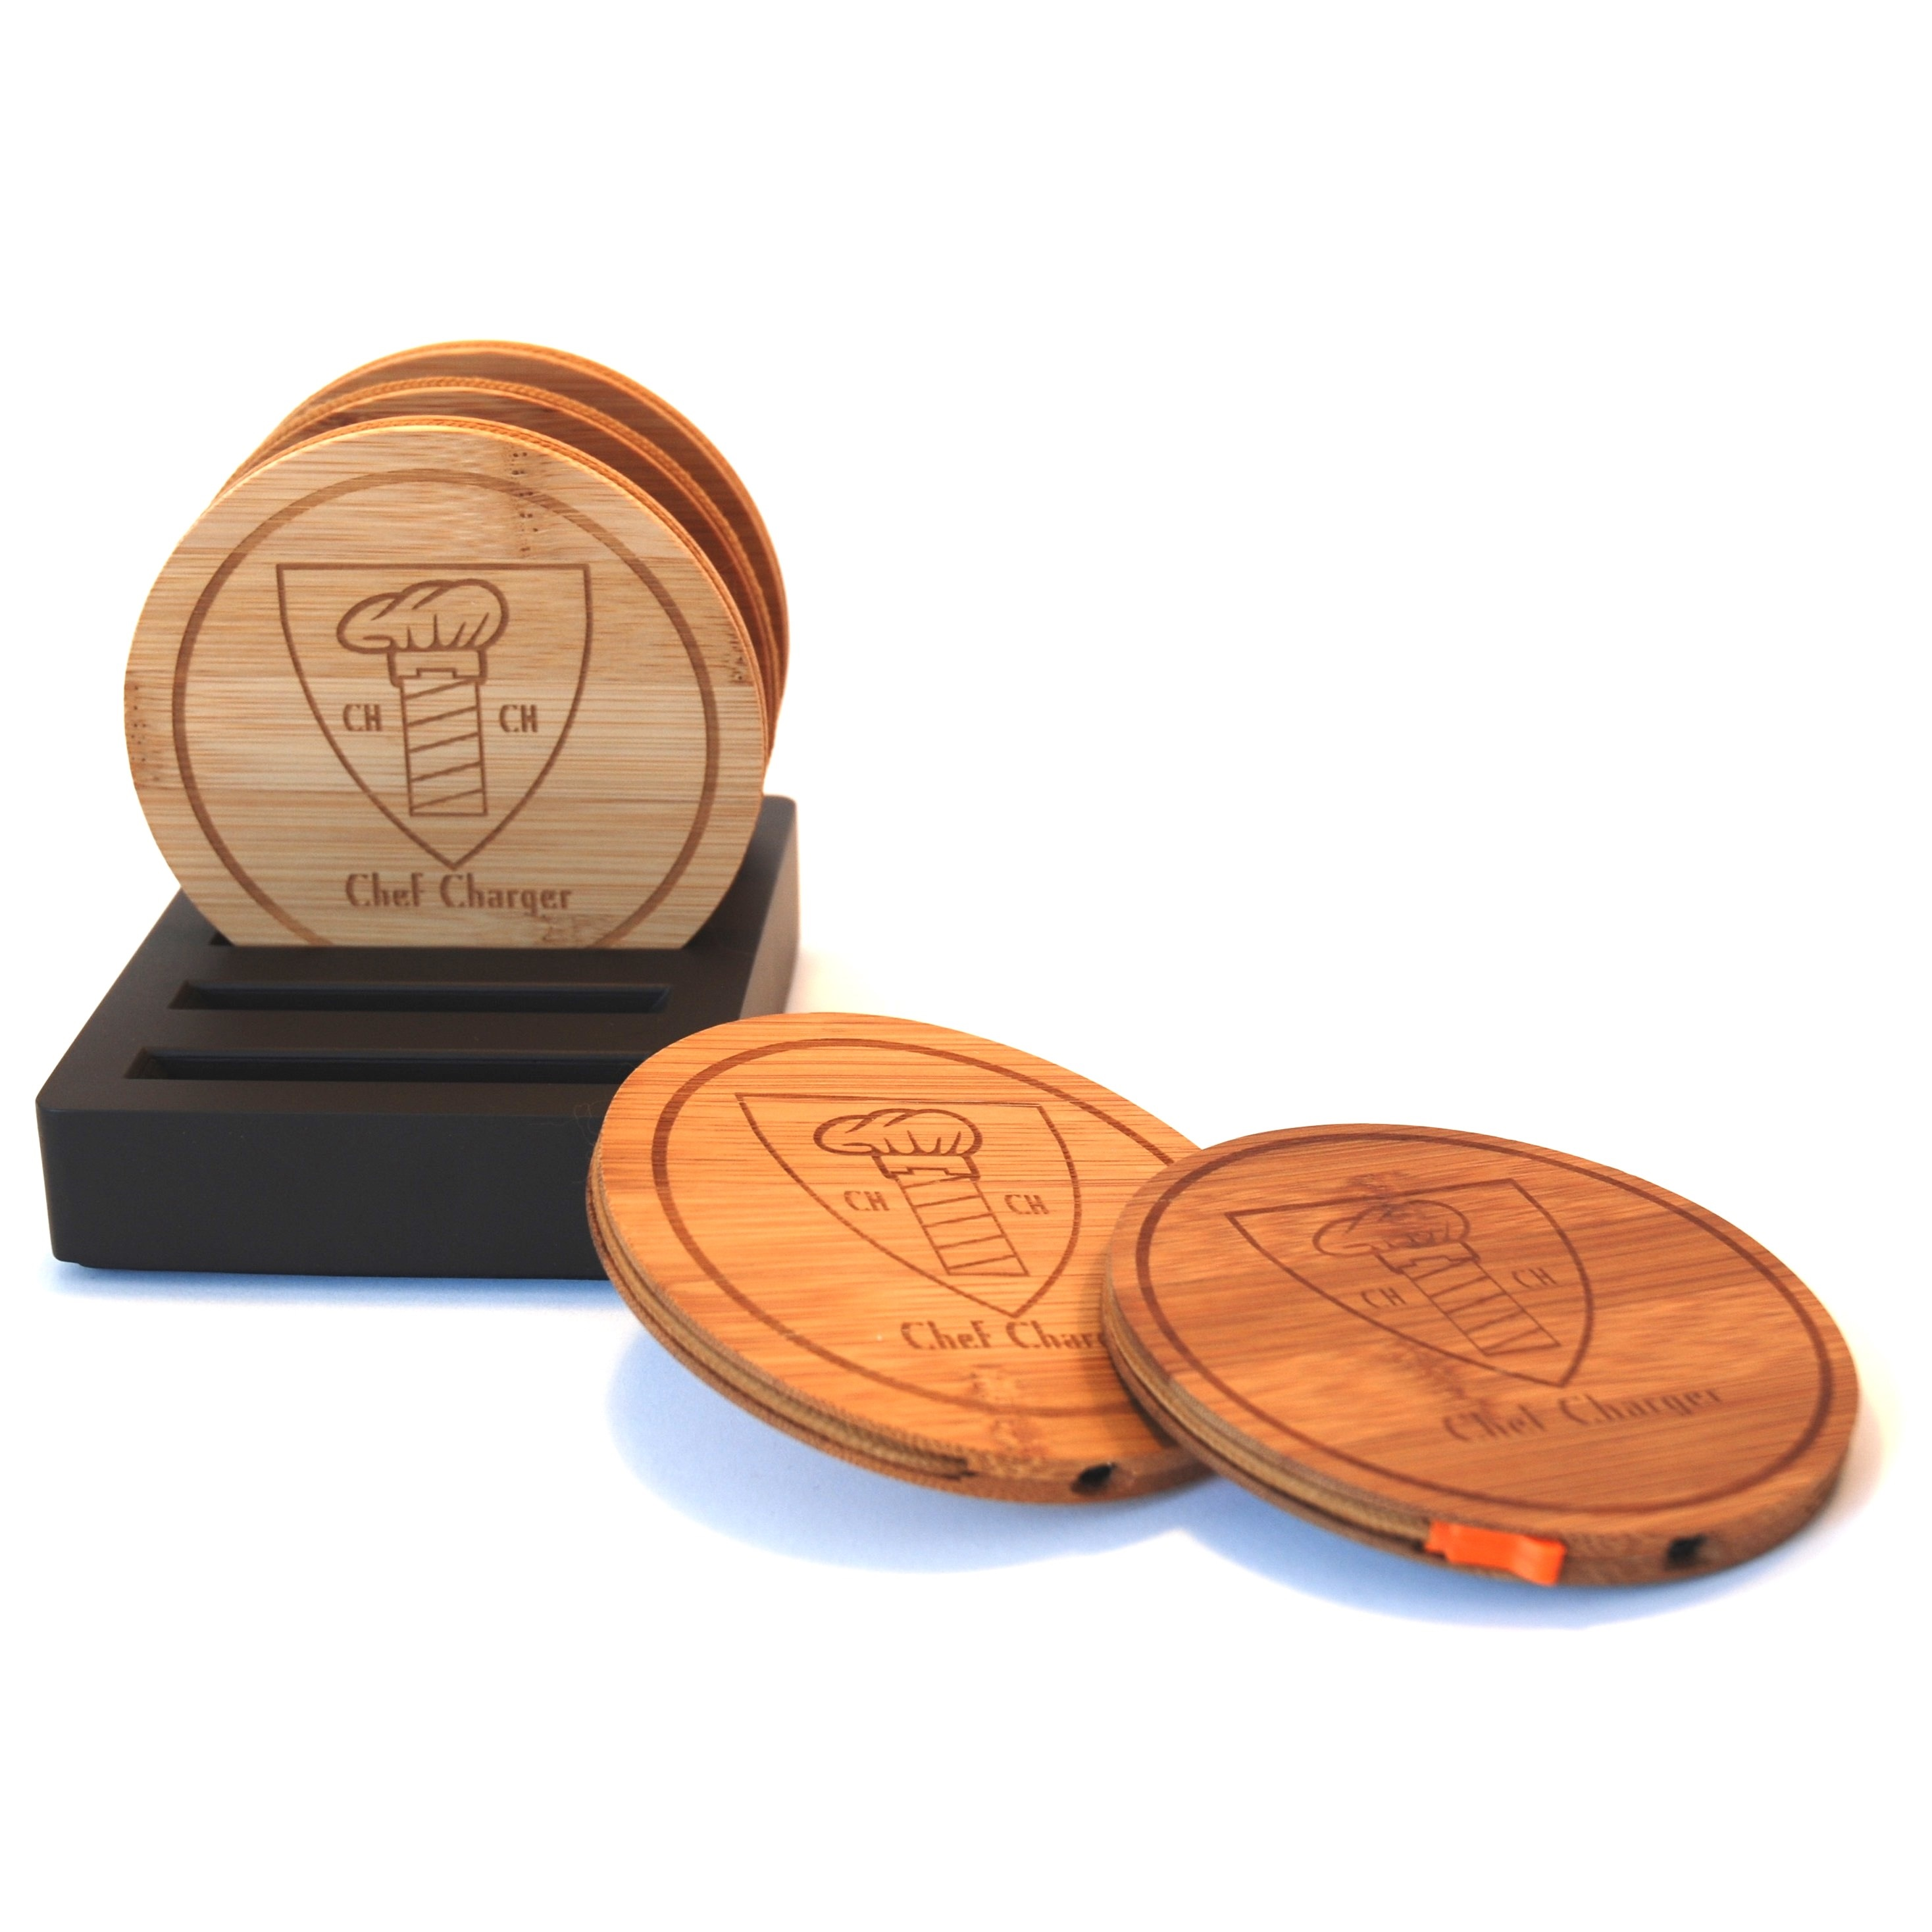 Bamboo Drink Coaster set of 5 Chef Charger